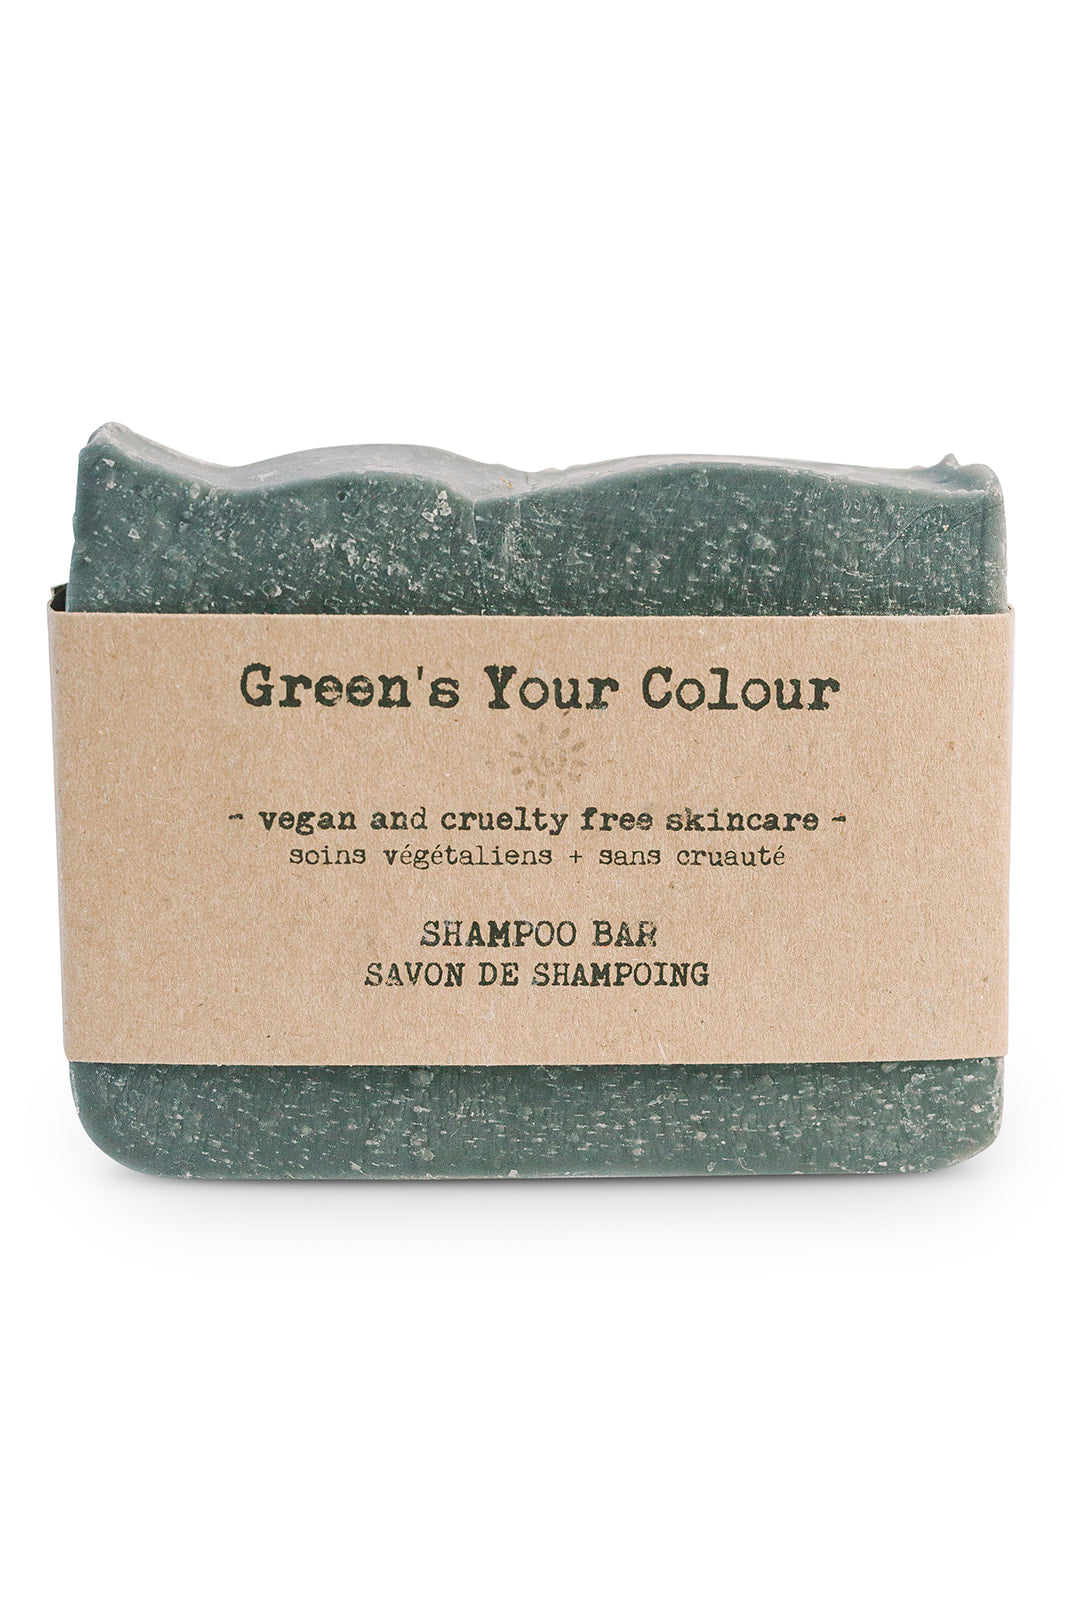 NATURAL SHAMPOO BAR (NOT VEGAN)